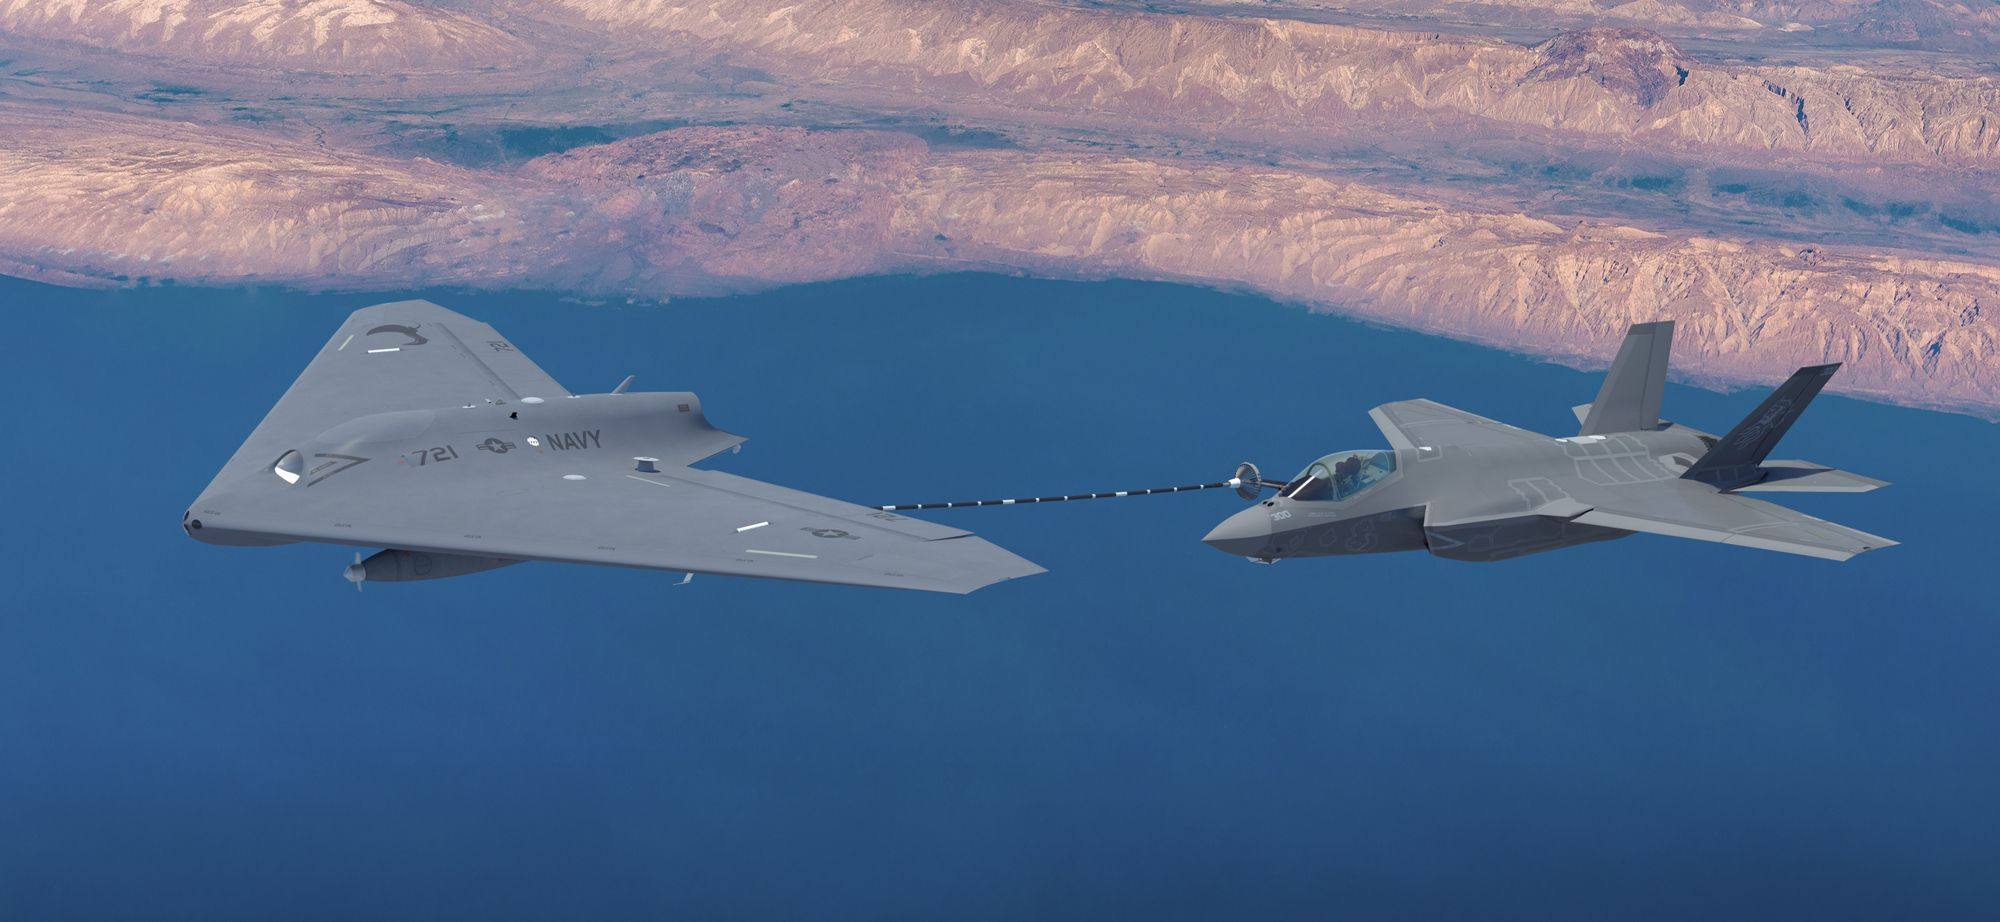 drones with Lockheed Martin Lanca O Mq 25 Stingray Sua Proposta De Drone Tanque Para A Us Navy on El Insomnio Causa Afecciones Cardiacas Segun Estudio in addition Lockheed Martin Lanca O Mq 25 Stingray Sua Proposta De Drone Tanque Para A Us Navy as well Caballo Arabe 128 moreover 20170925 Voting Ends In Controversial Poll In Northern Iraq as well Accurate Drone Survey Everything Need Know.